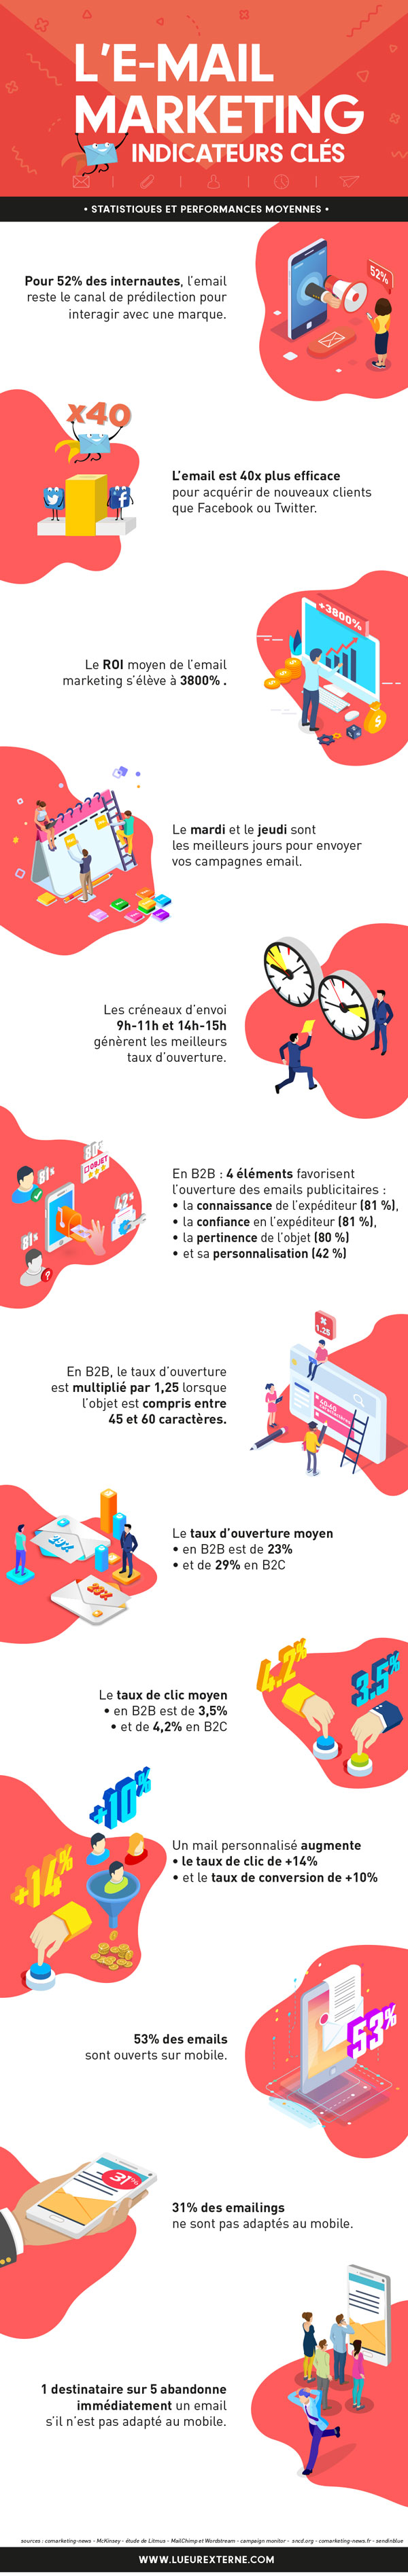 Infographie : L'Email Marketing – Indicateurs clés